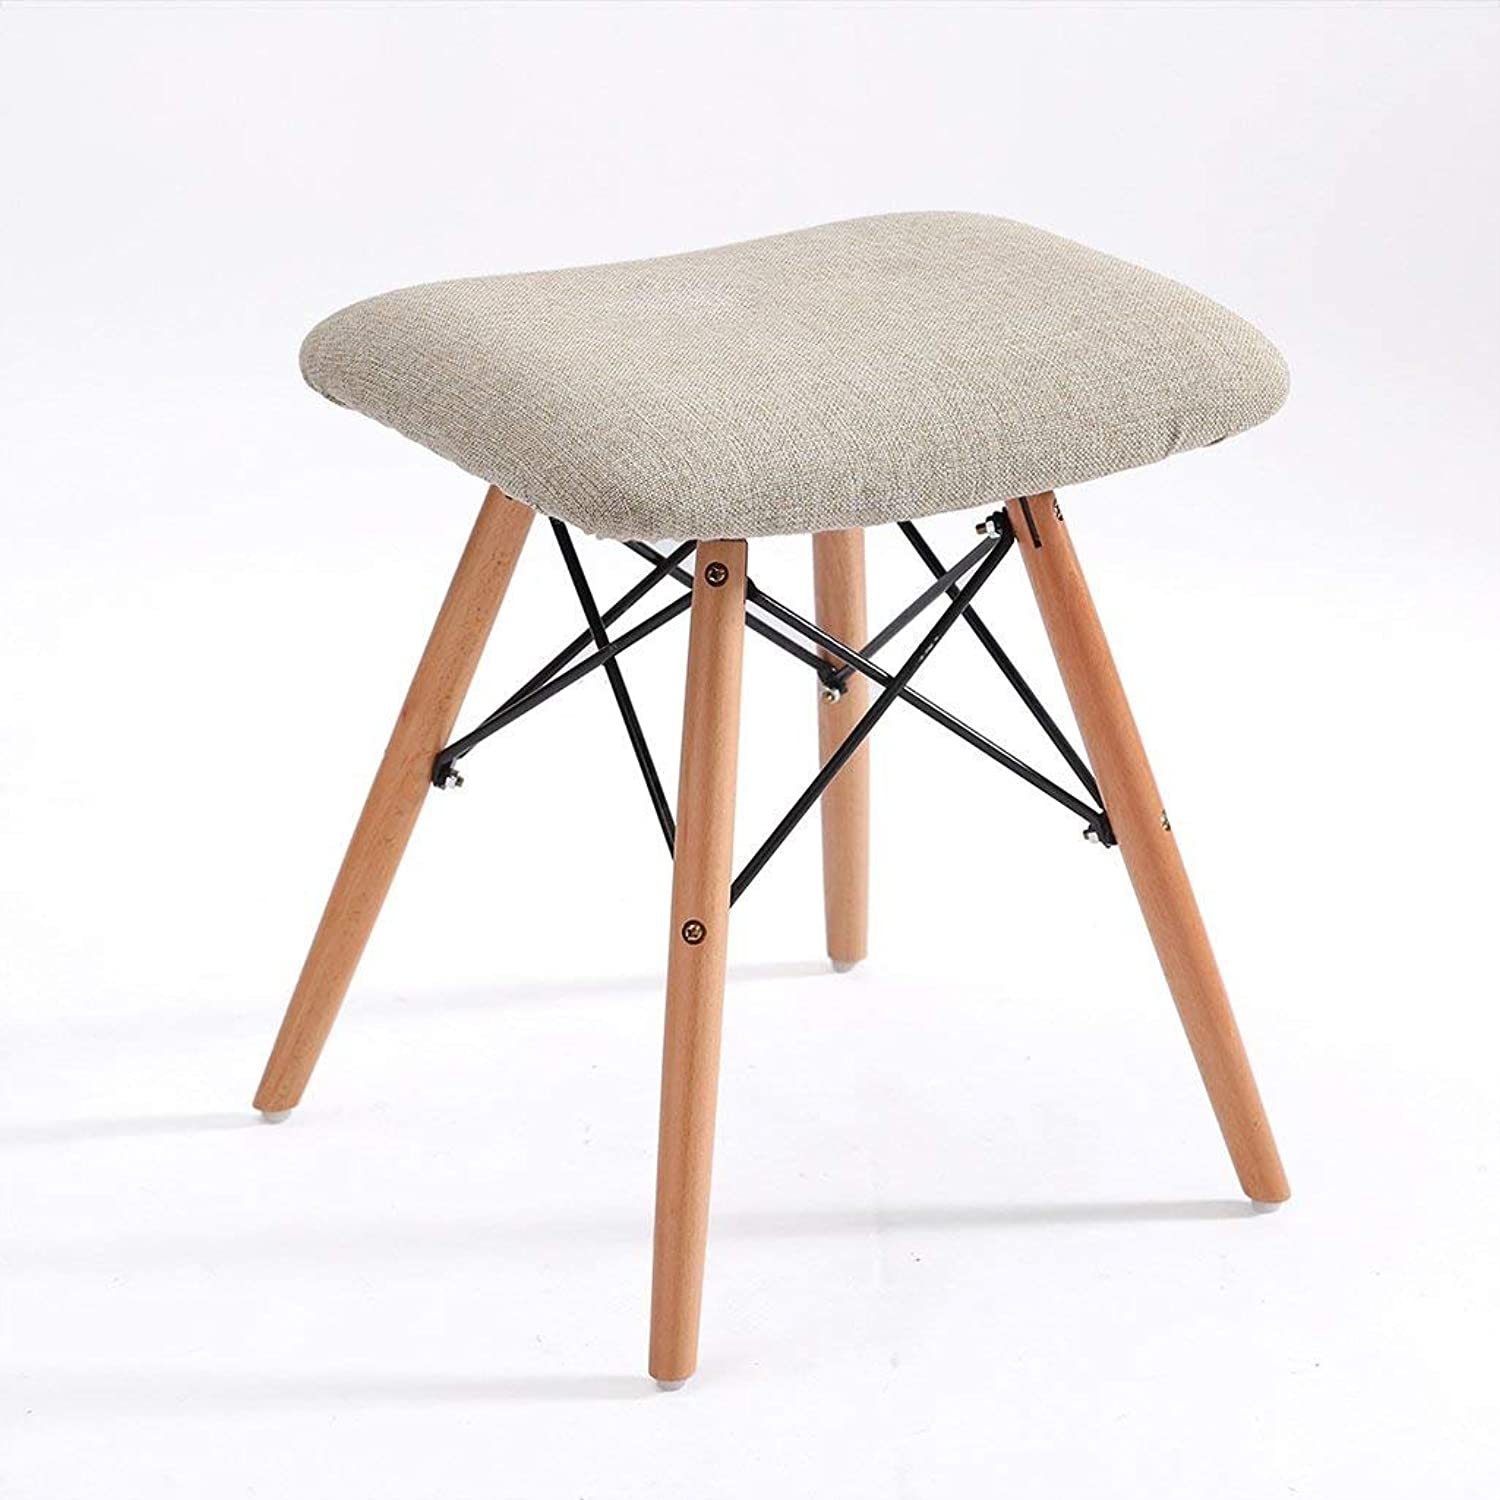 Stool Chair Stool Solid Wood Stool Folding Portable Fabric Removable Washable Chairs Casual Computer Chairs Home Stool (color   A)